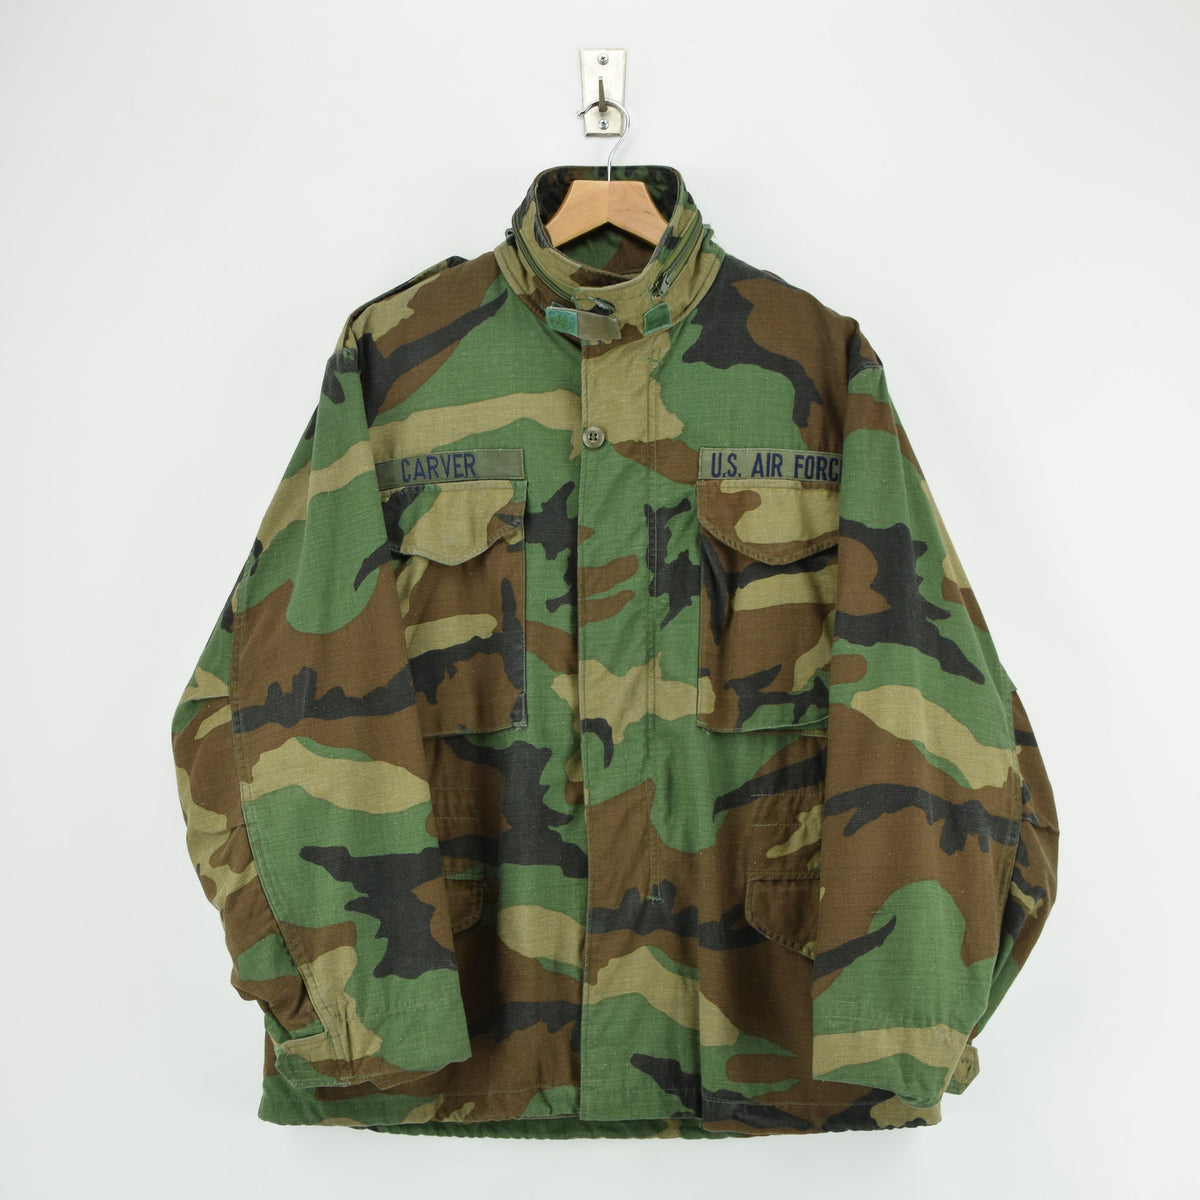 Vintage 80s M-65 Woodland Camouflage Field Coat Military US Air Force Jacket M FRONT